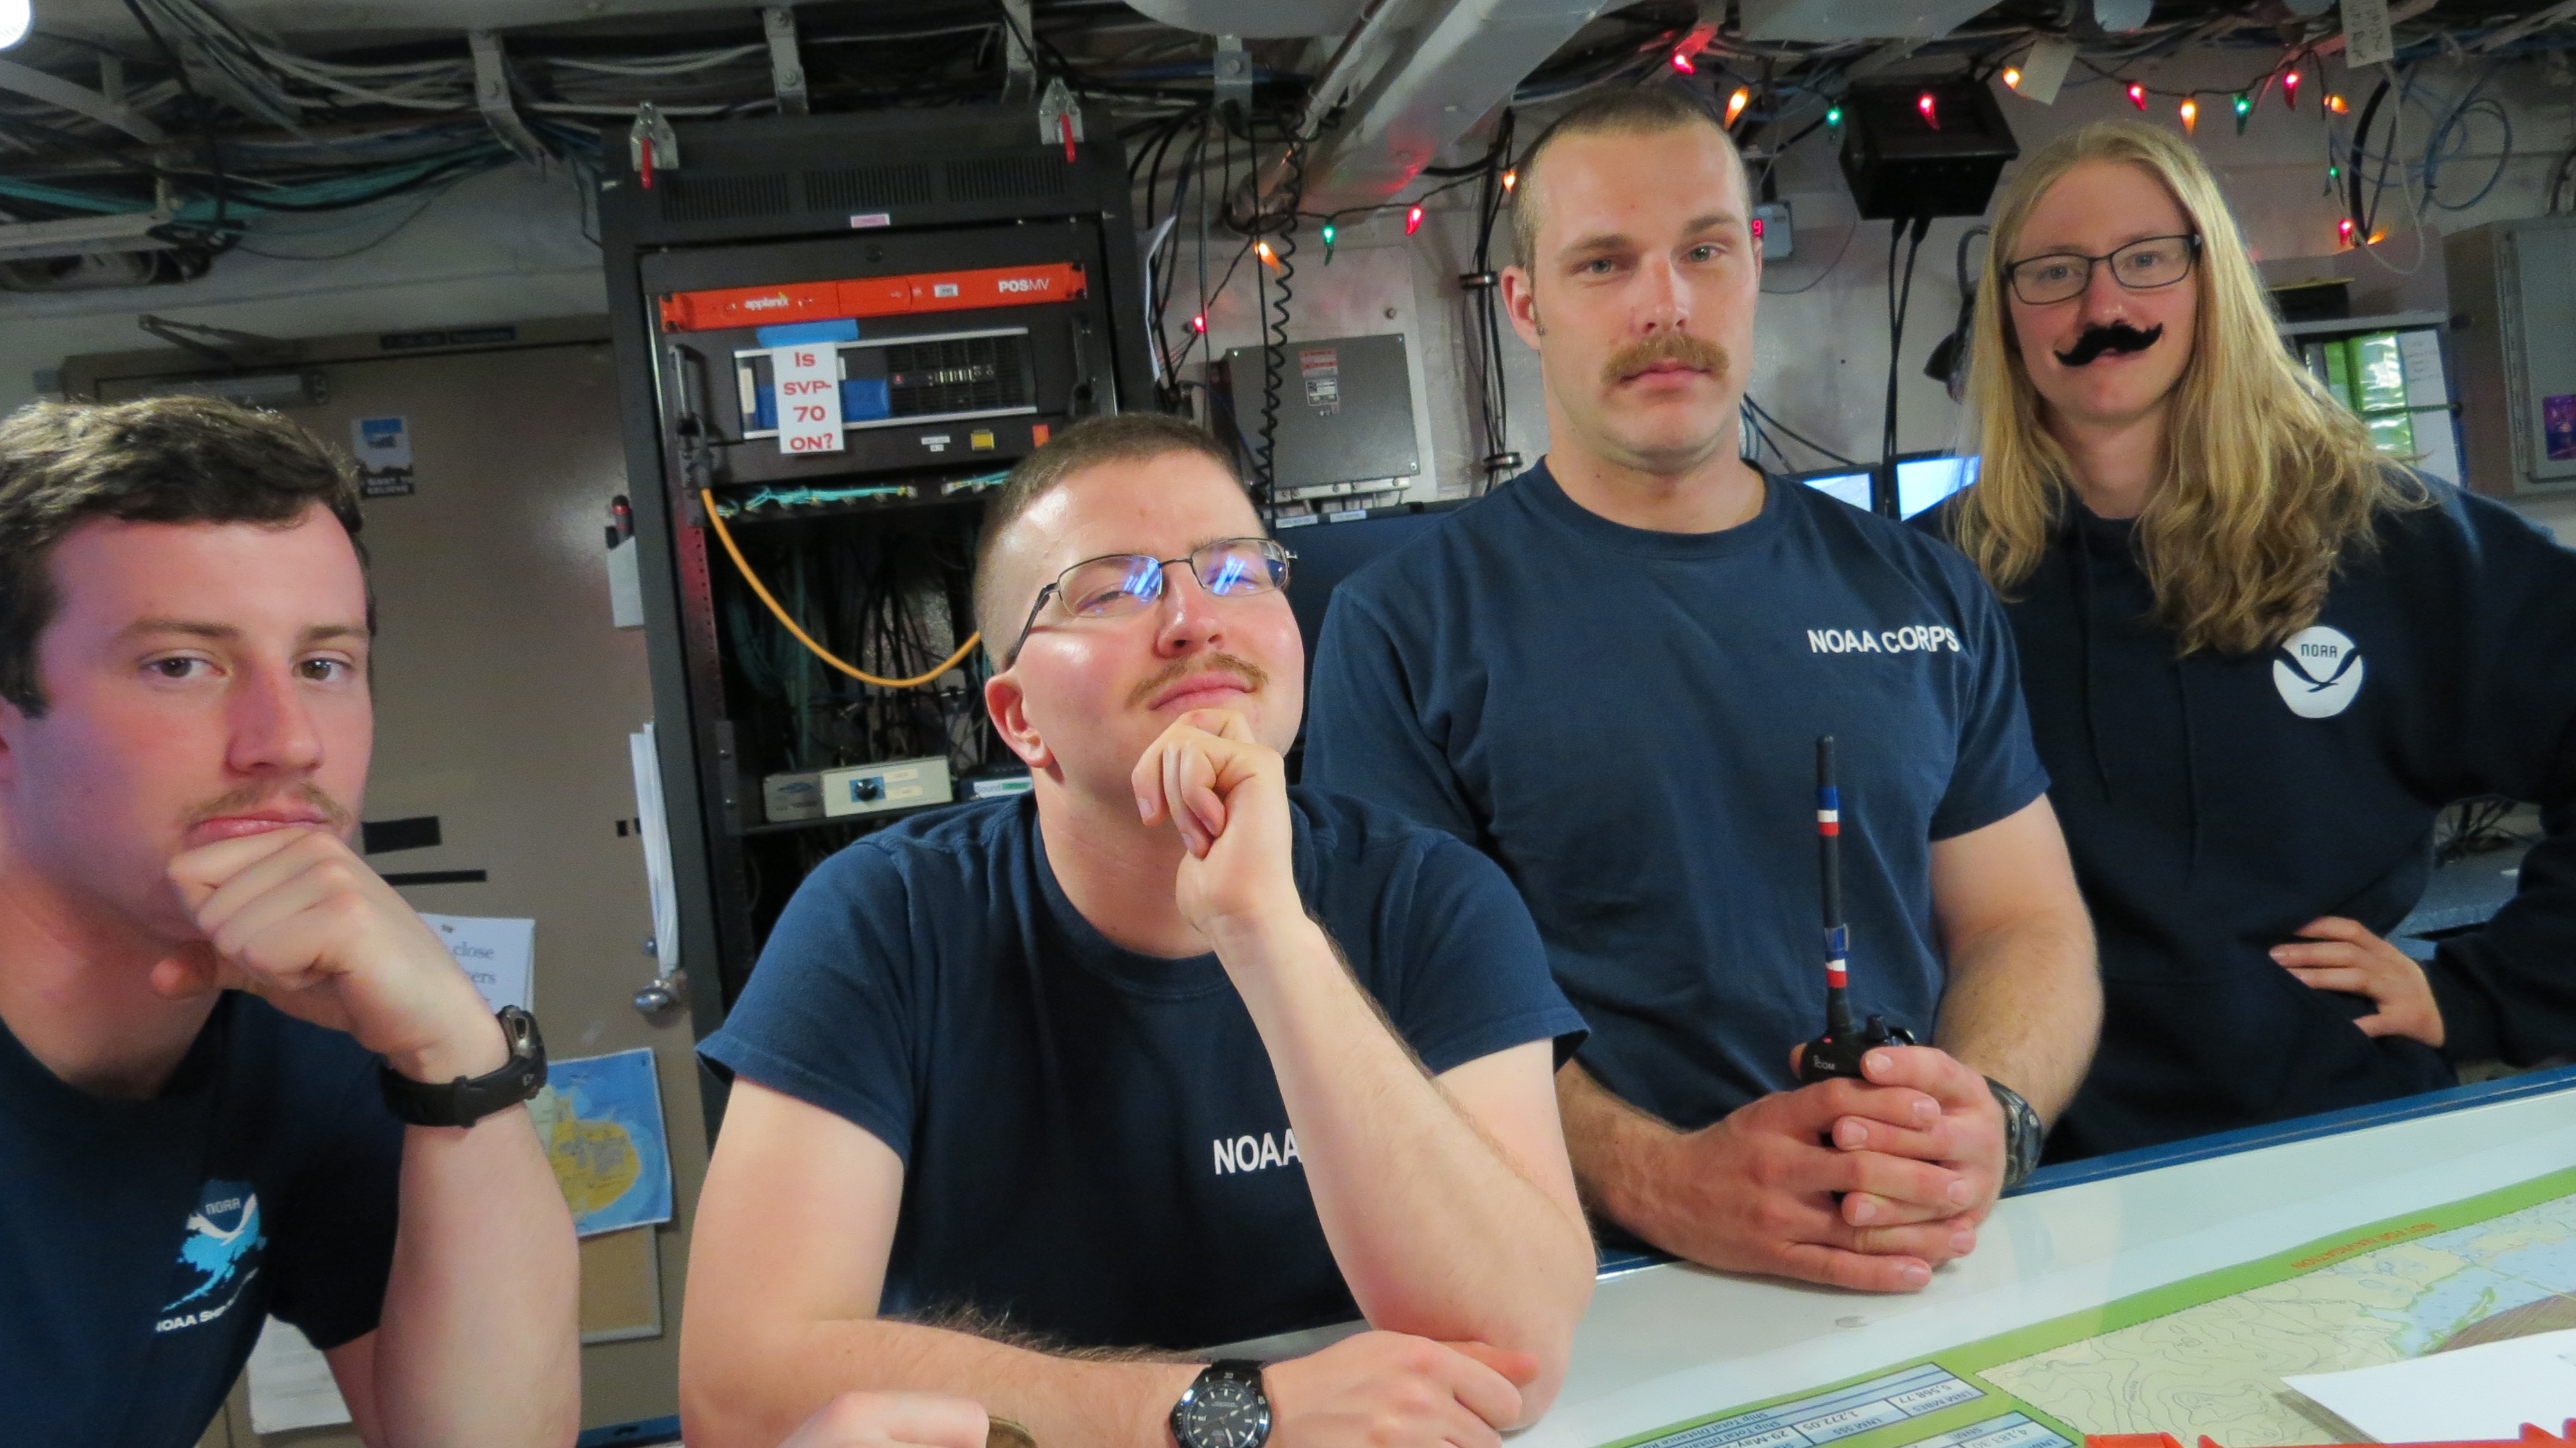 NOAA Corps mustaches